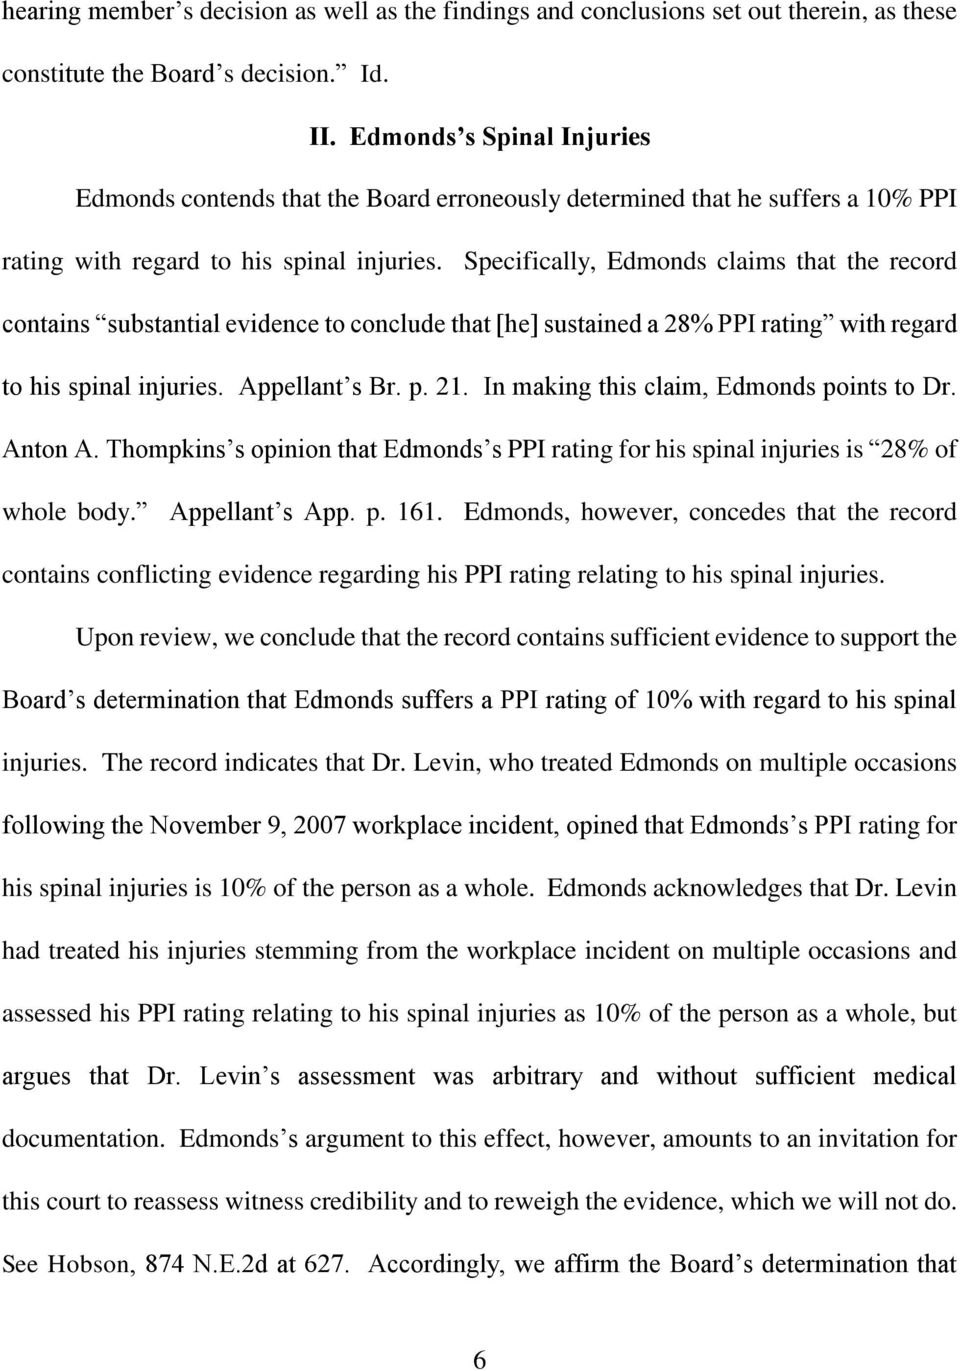 Specifically, Edmonds claims that the record contains substantial evidence to conclude that [he] sustained a 28% PPI rating with regard to his spinal injuries. Appellant s Br. p. 21.